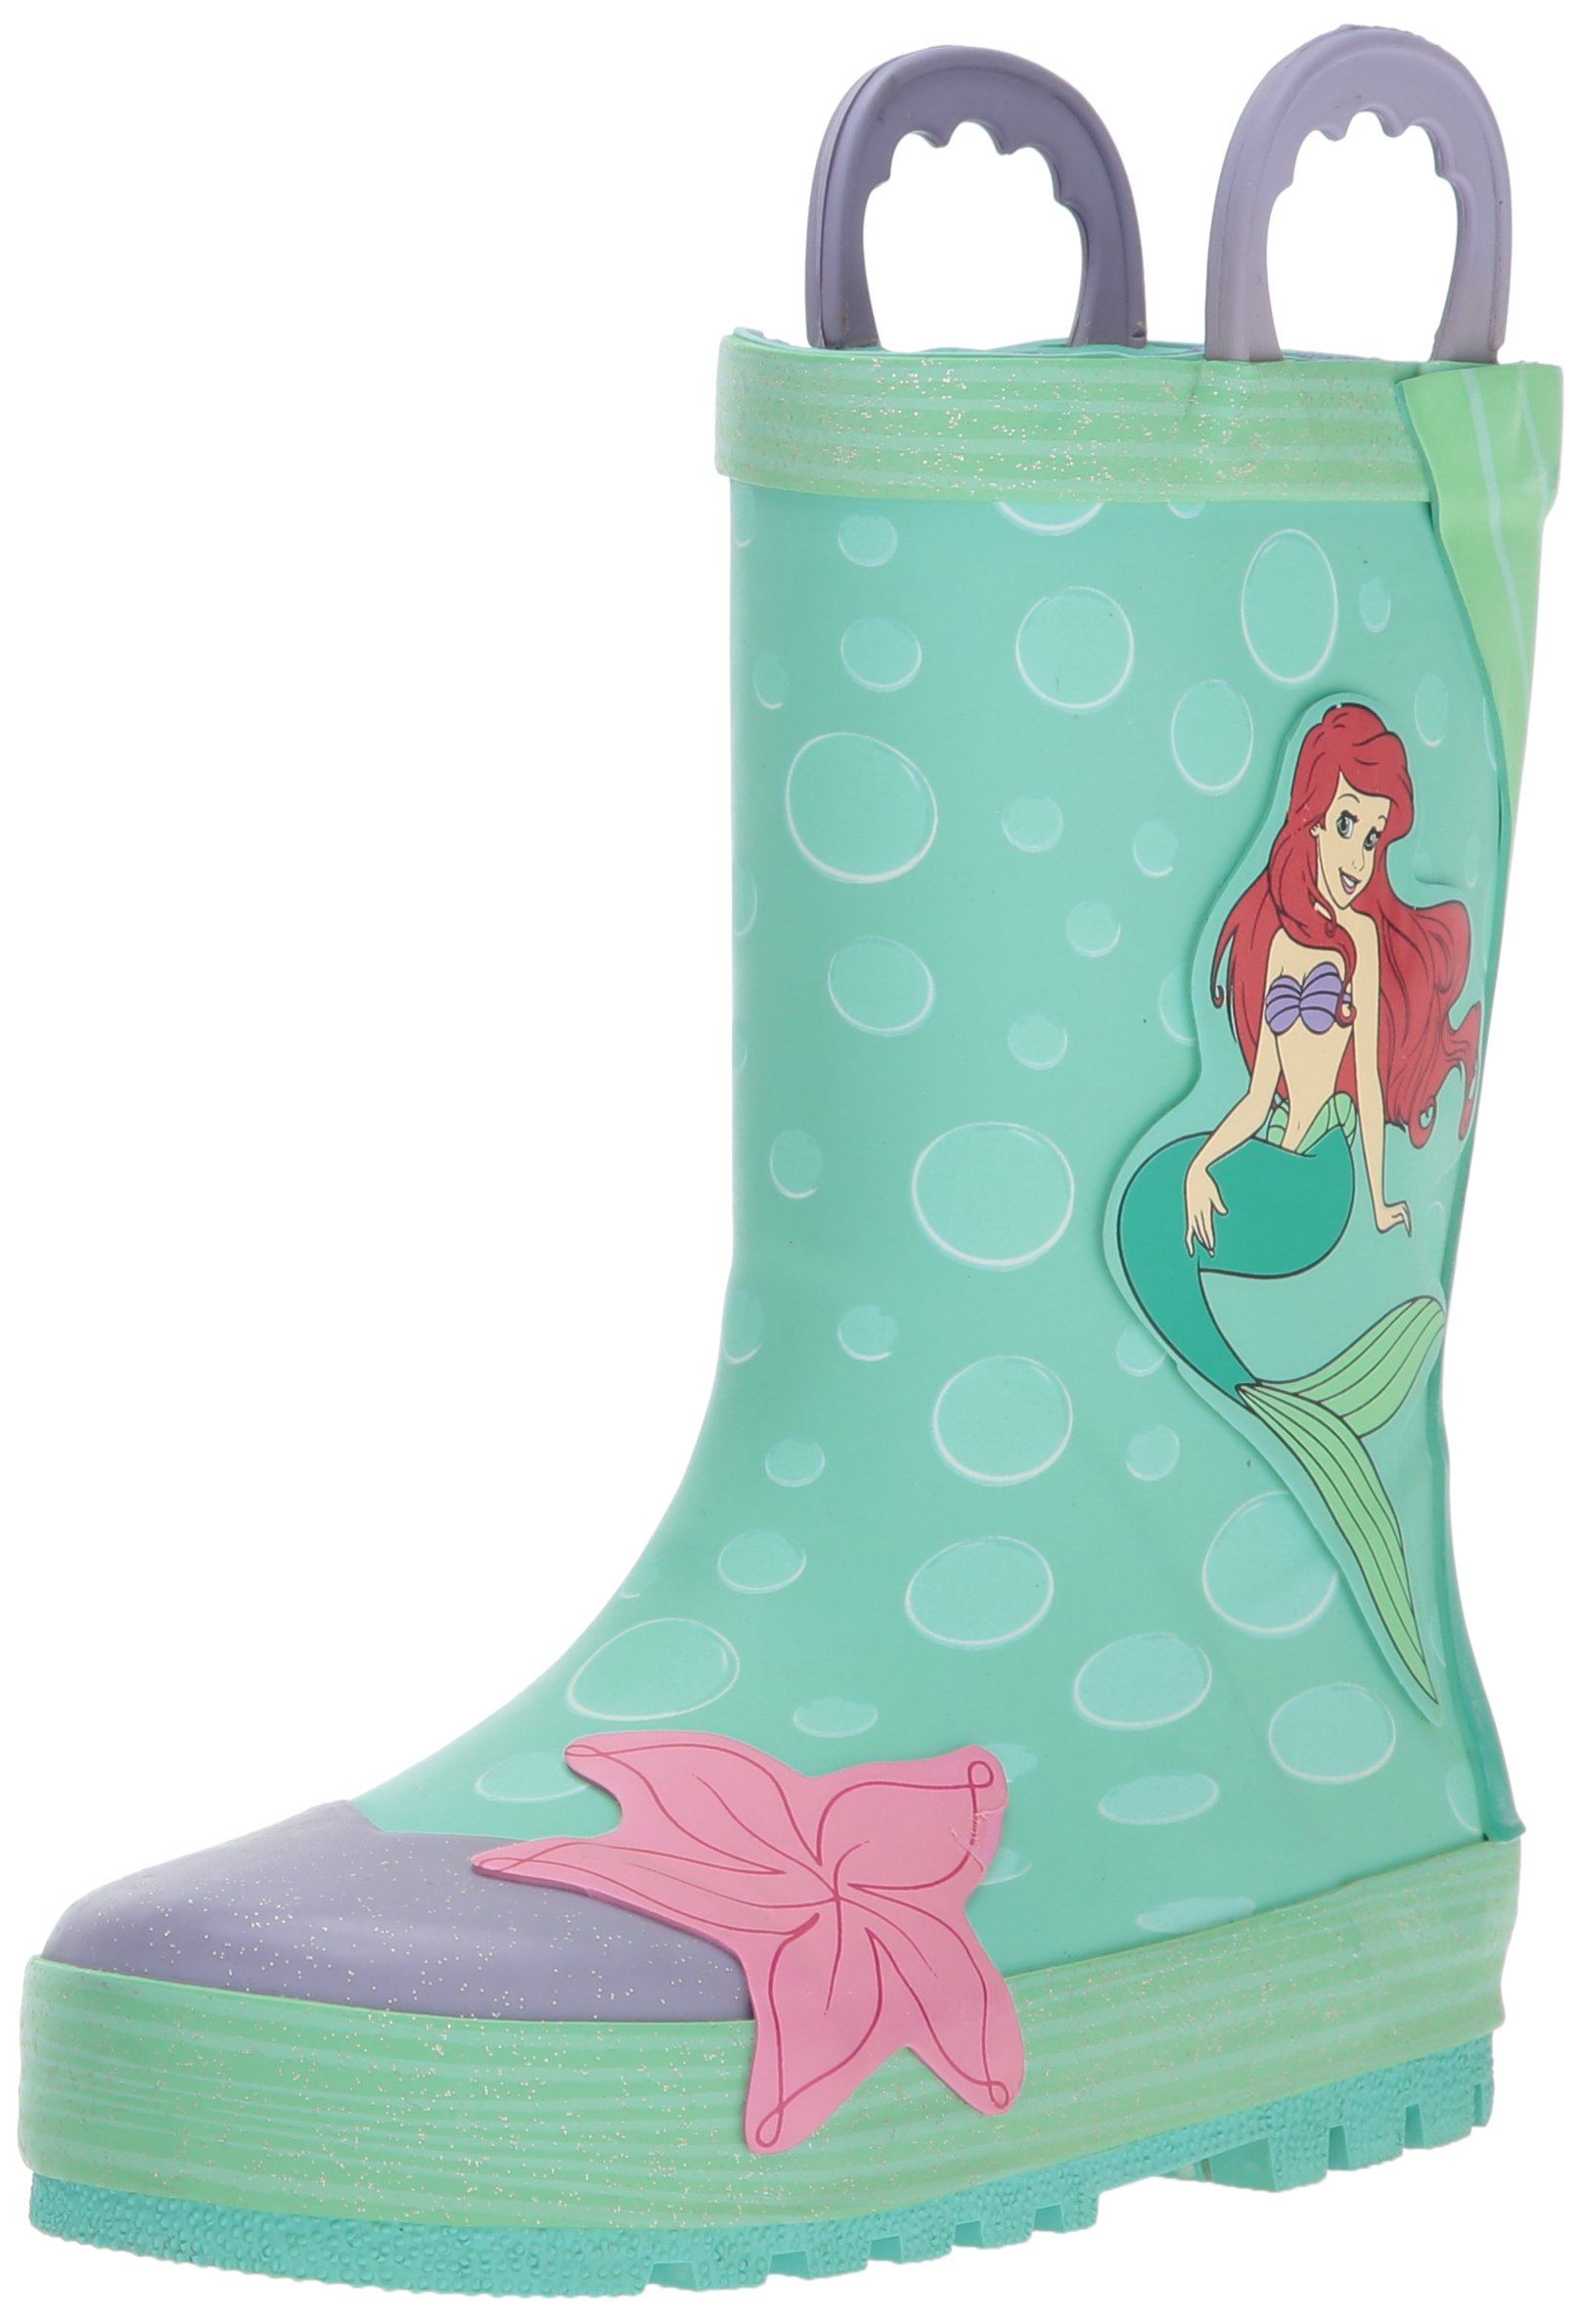 Western Chief Kids Waterproof Disney Character Rain Boots with Easy on Handles, Ariel Disney Princess, 12 M US Little Kid